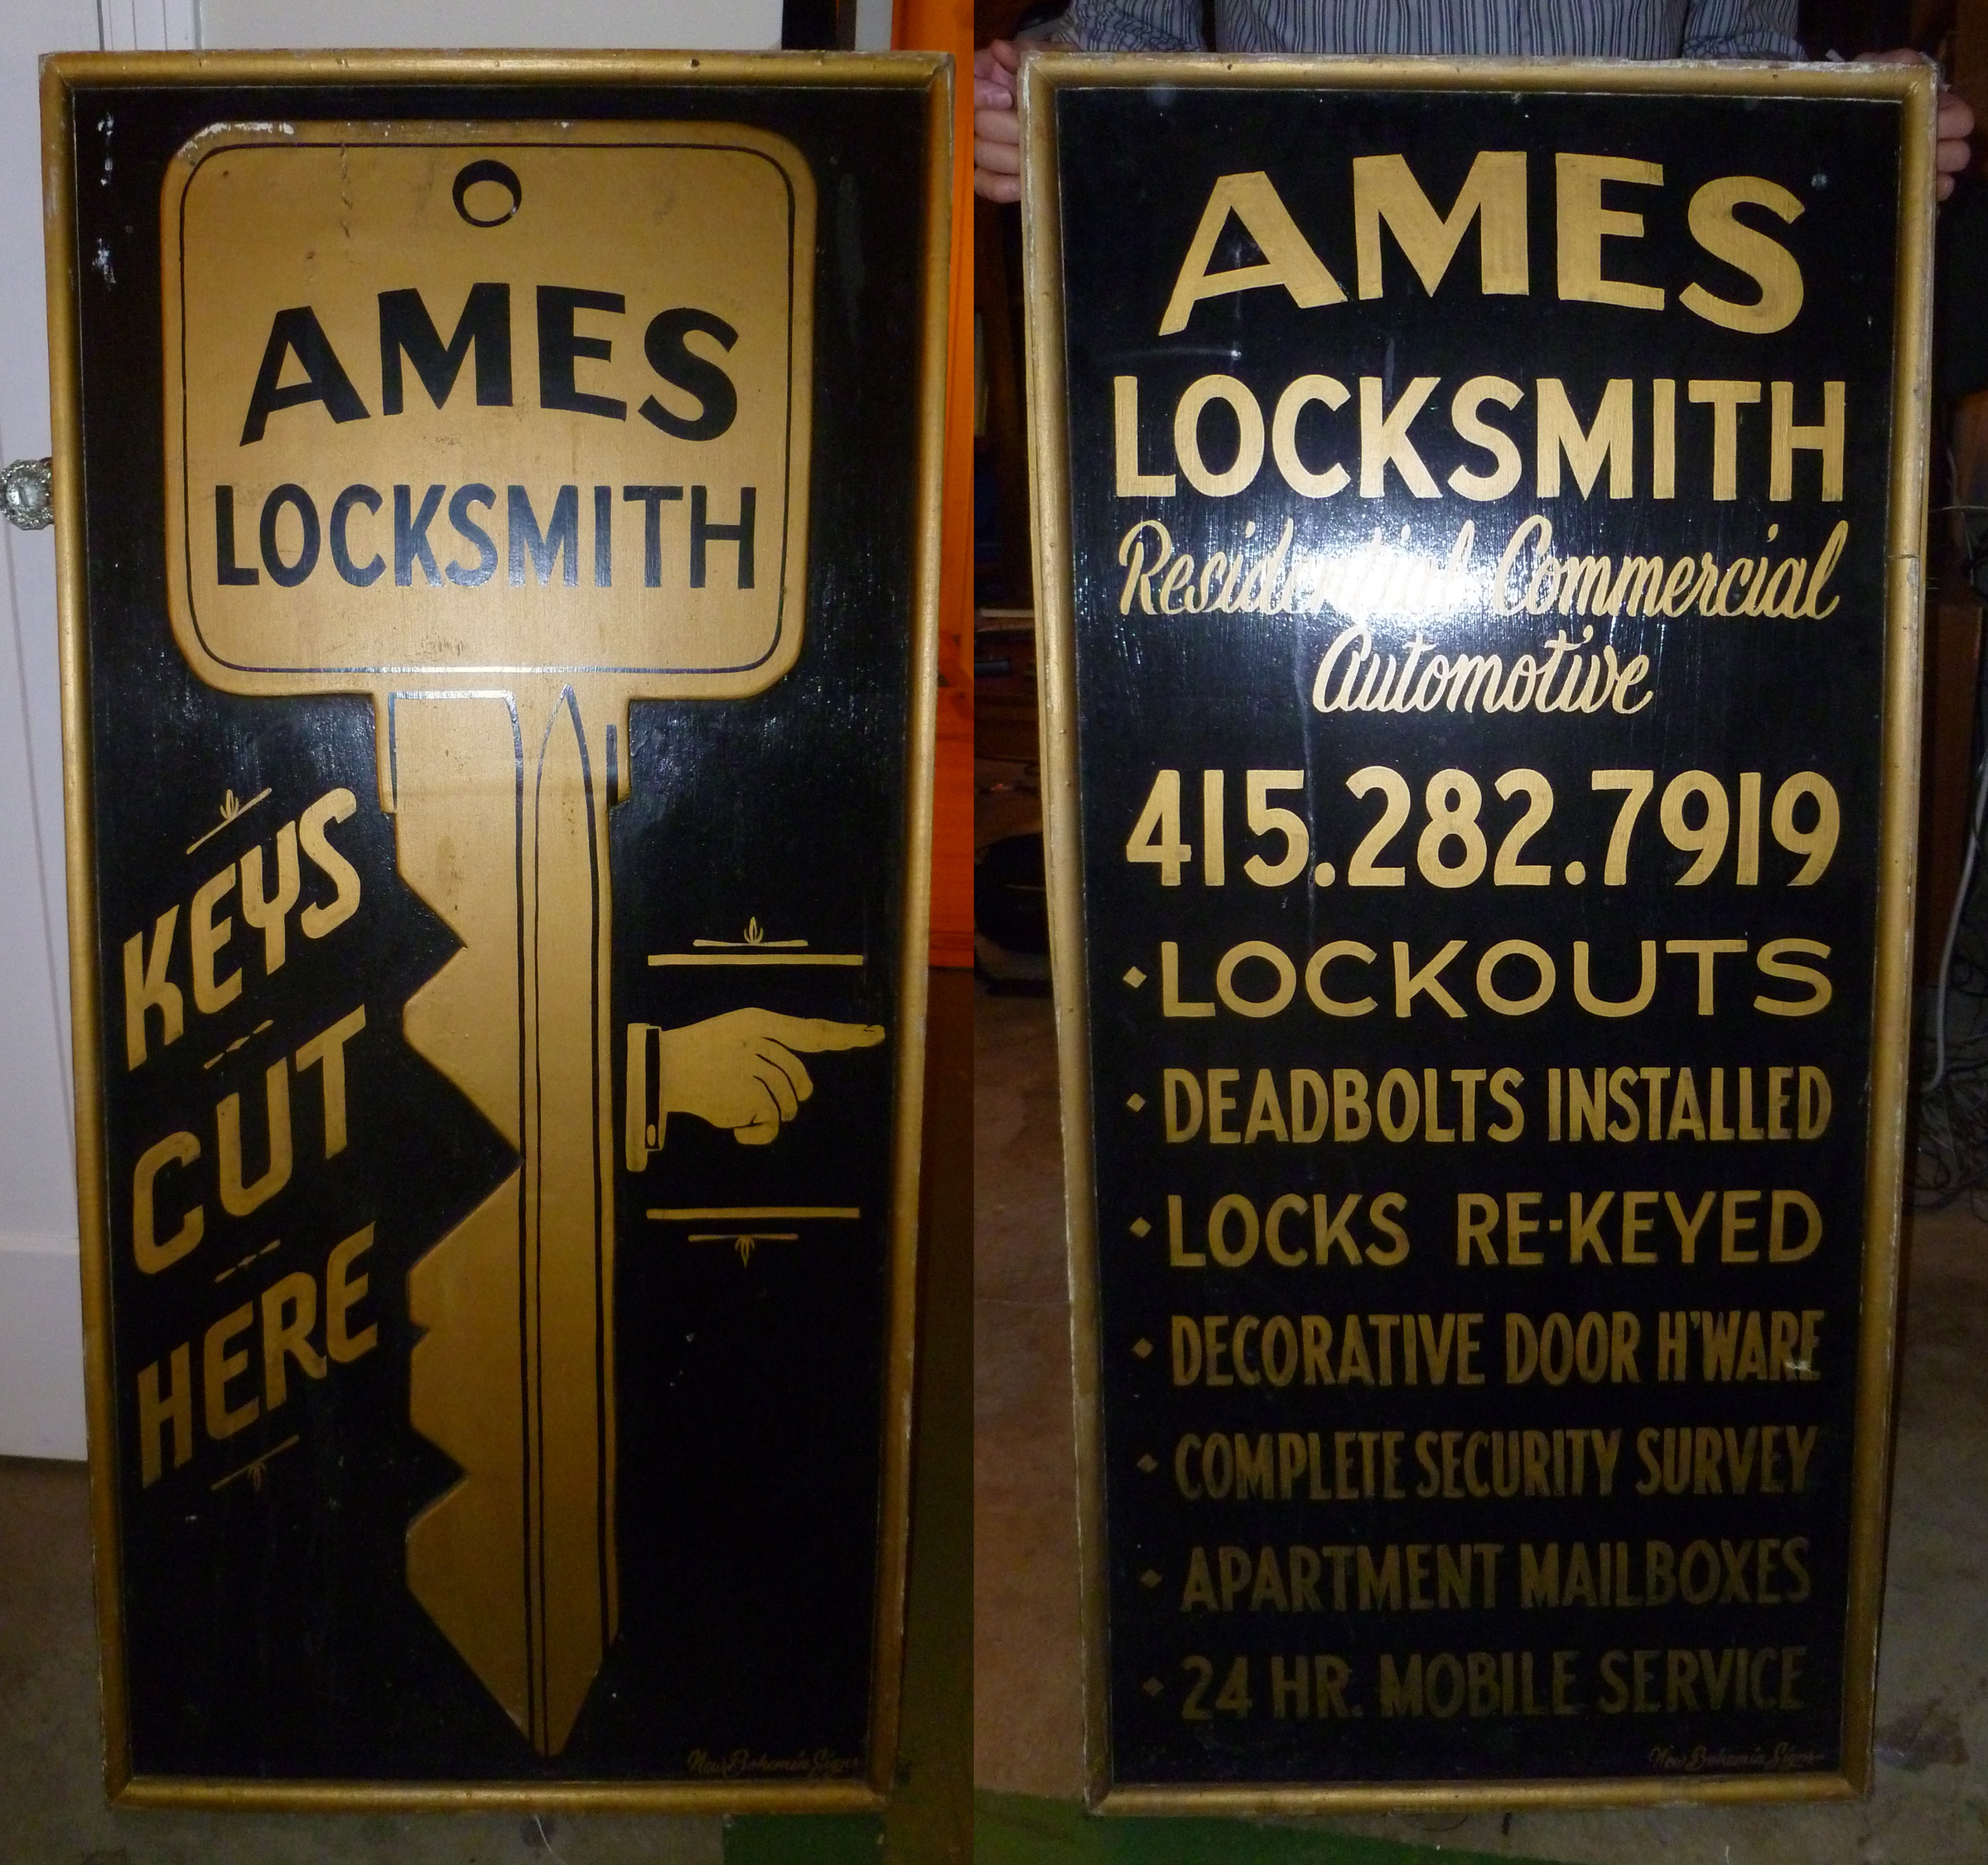 HAND-ames-locksmith_5352742039_o.jpg